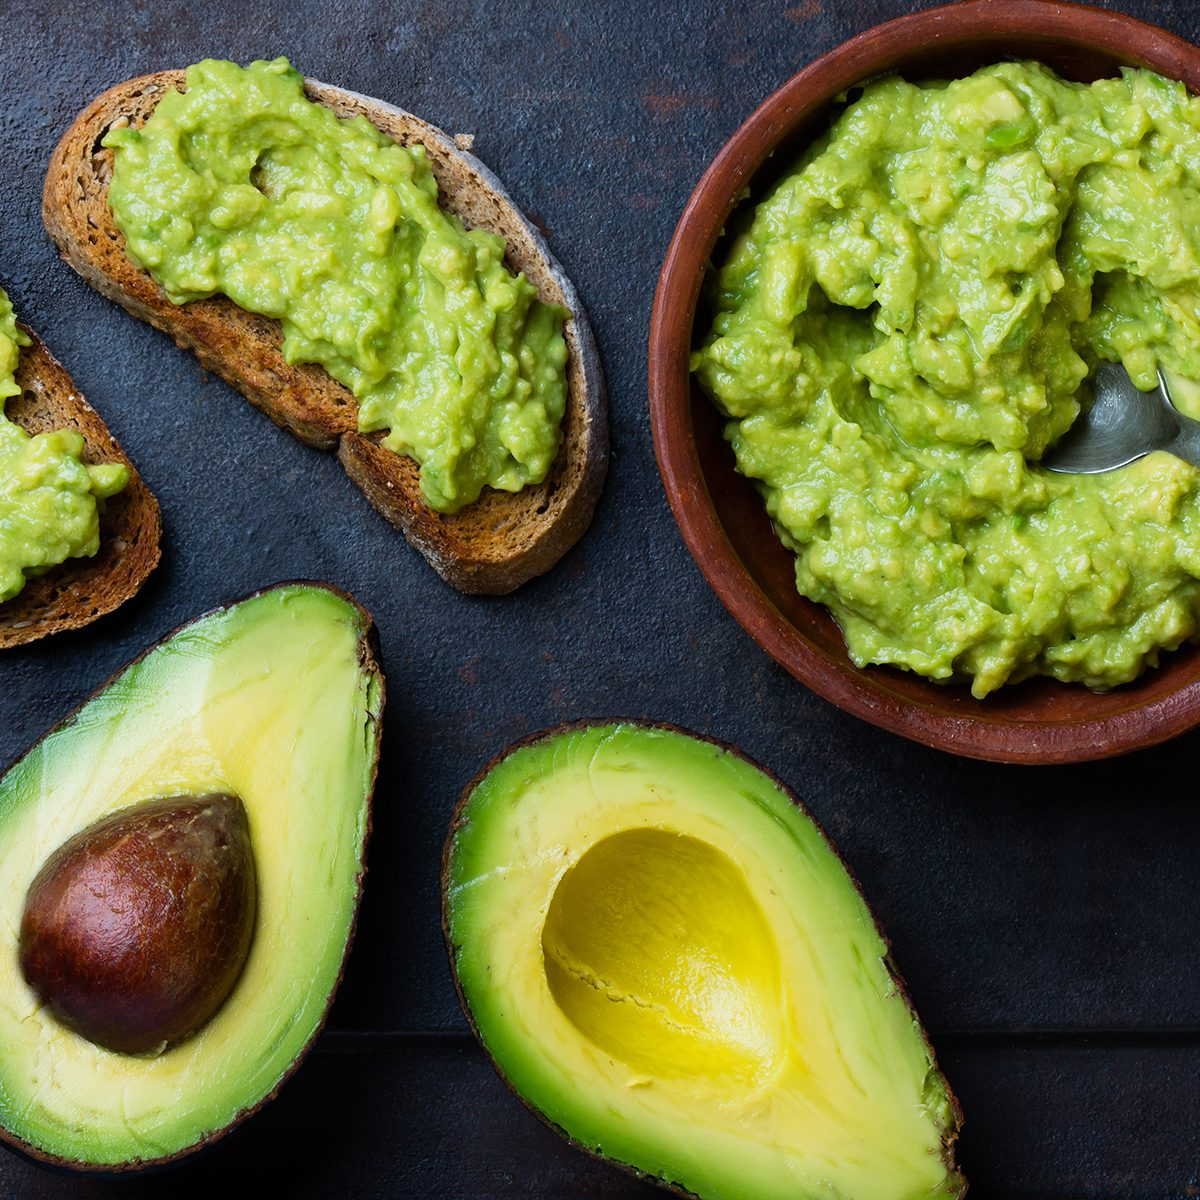 Image result for avocado health benefits